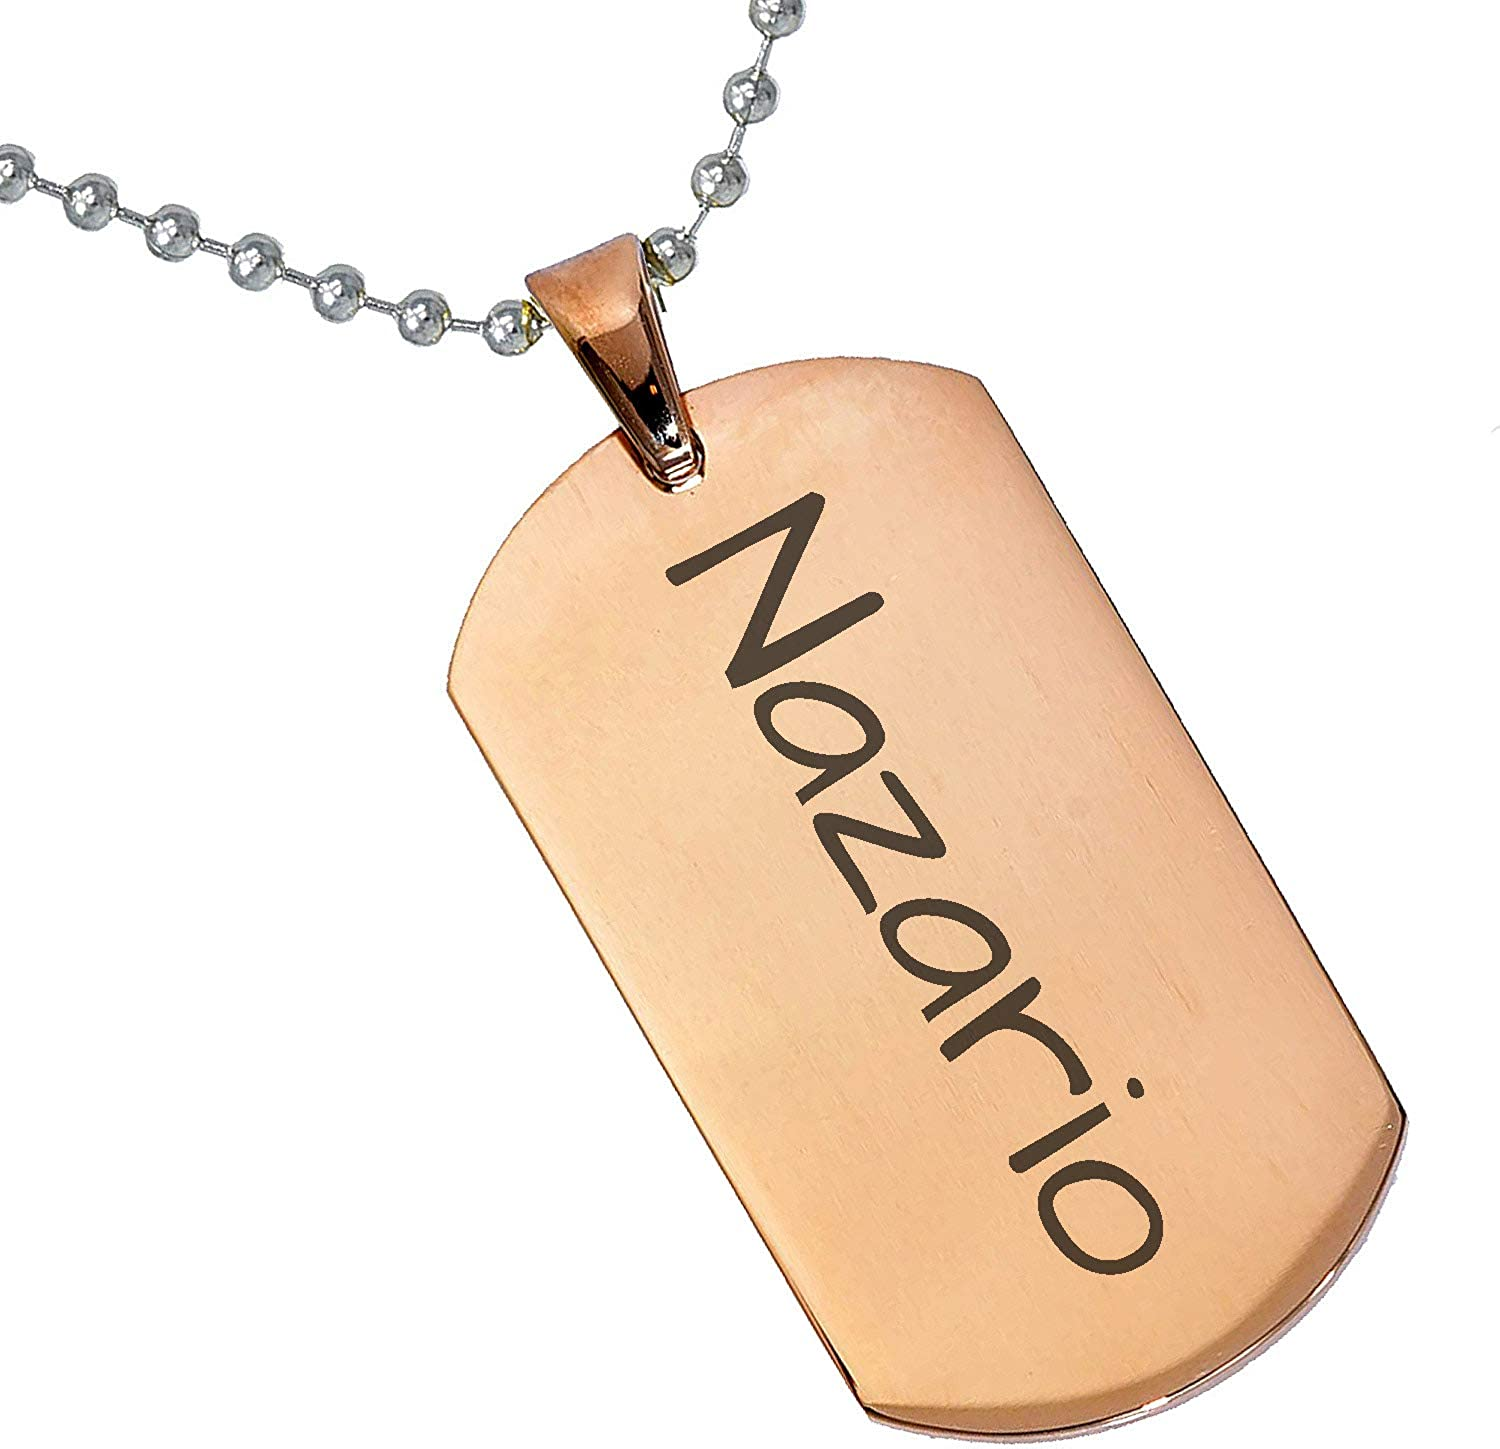 Stainless Steel Silver Gold Black Rose Gold Color Baby Name Nazario Engraved Personalized Gifts For Son Daughter Boyfriend Girlfriend Initial Customizable Pendant Necklace Dog Tags 24 Ball Chain